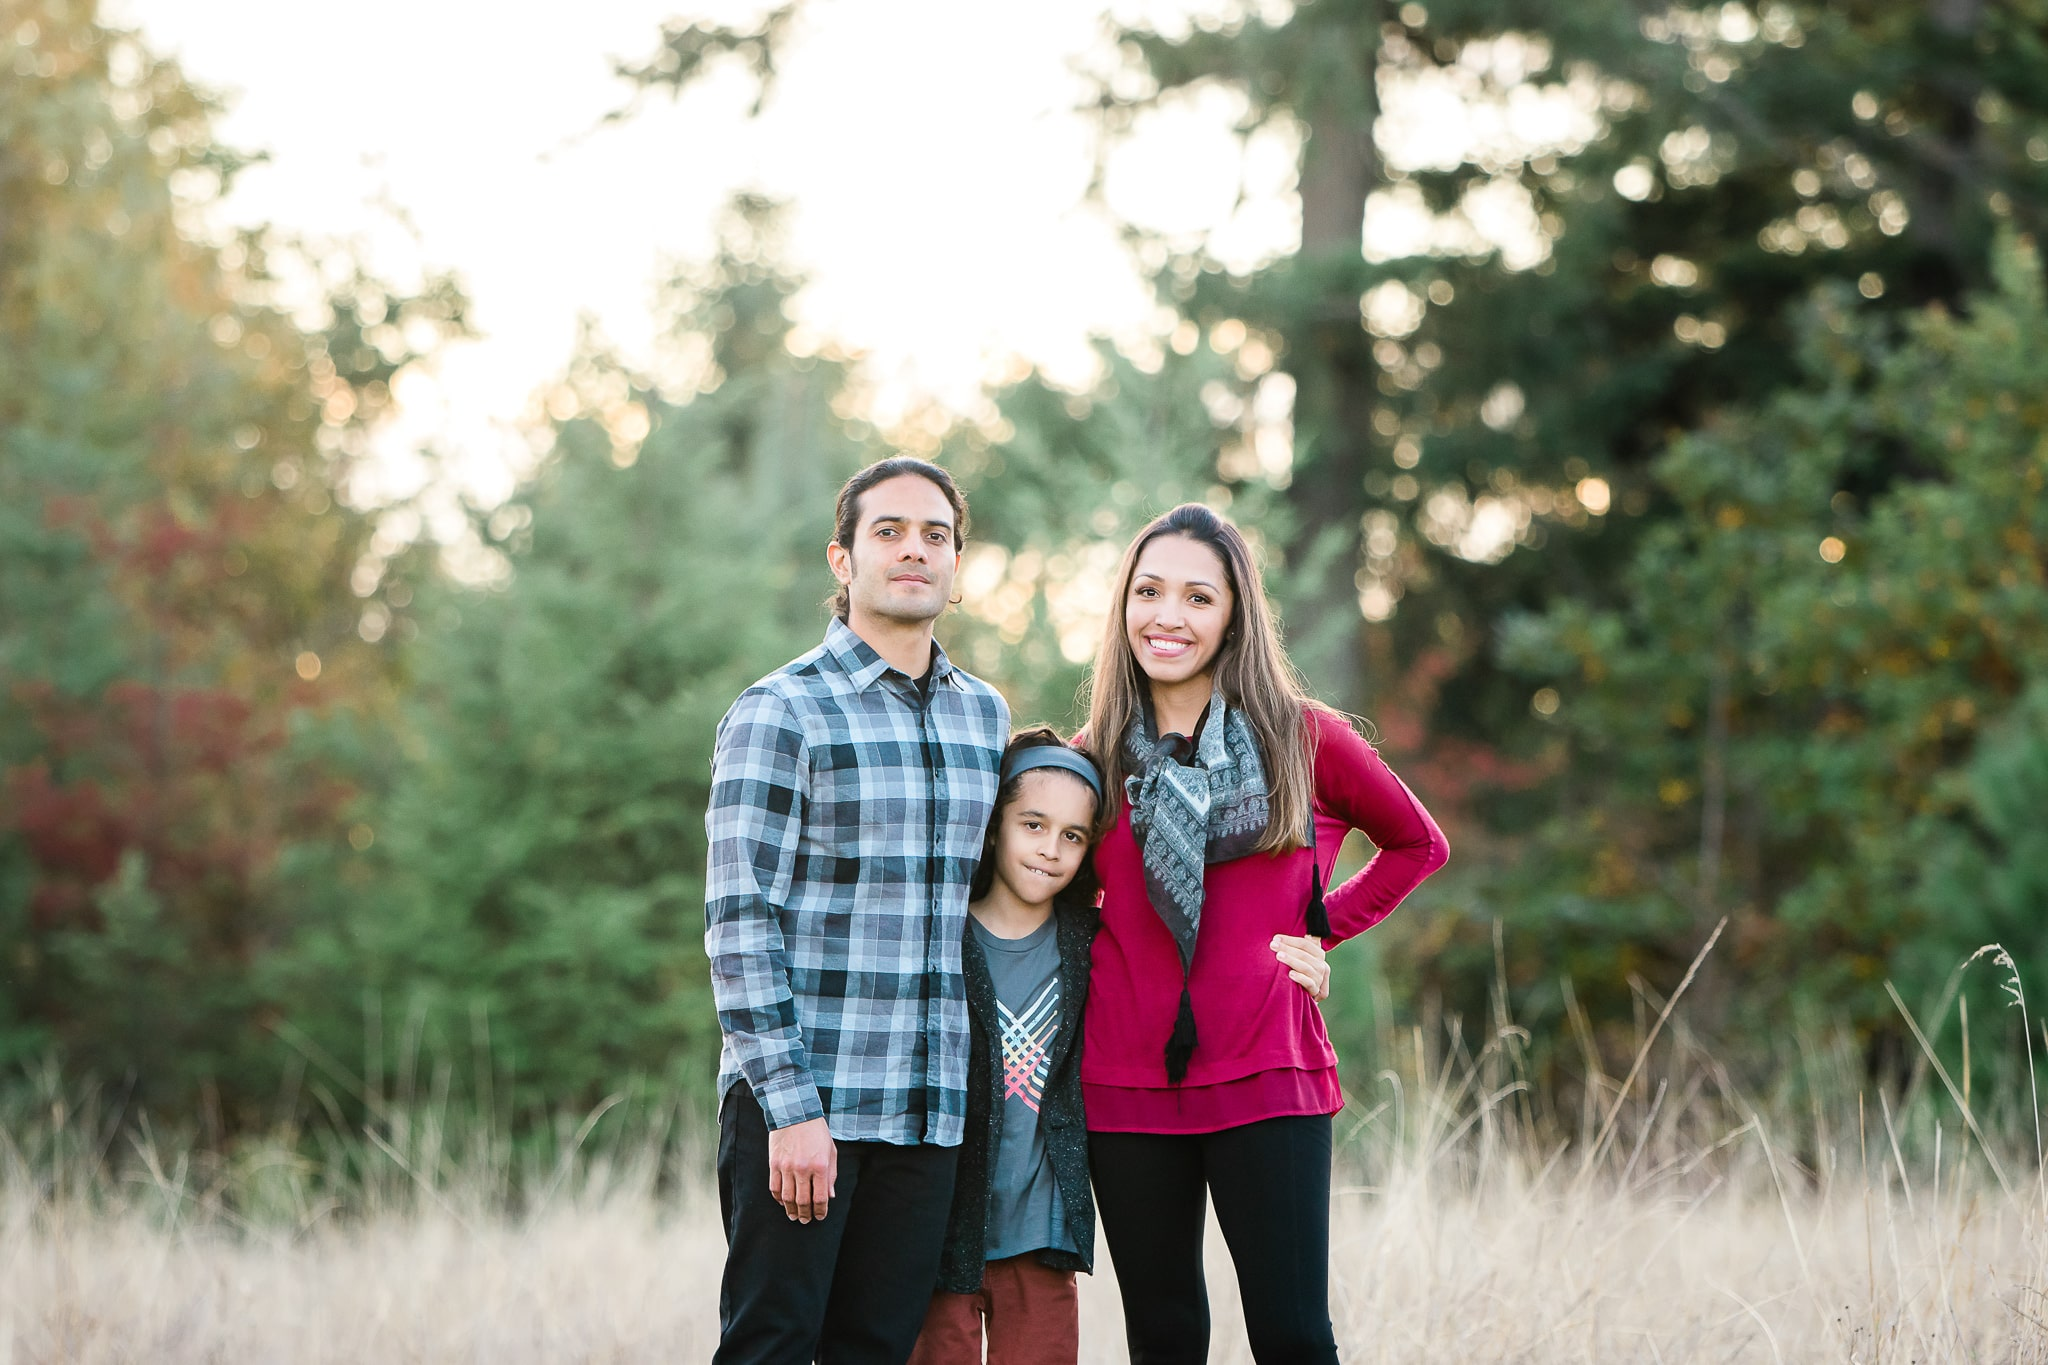 family poses for a photo by Elizabeth Hite Photography